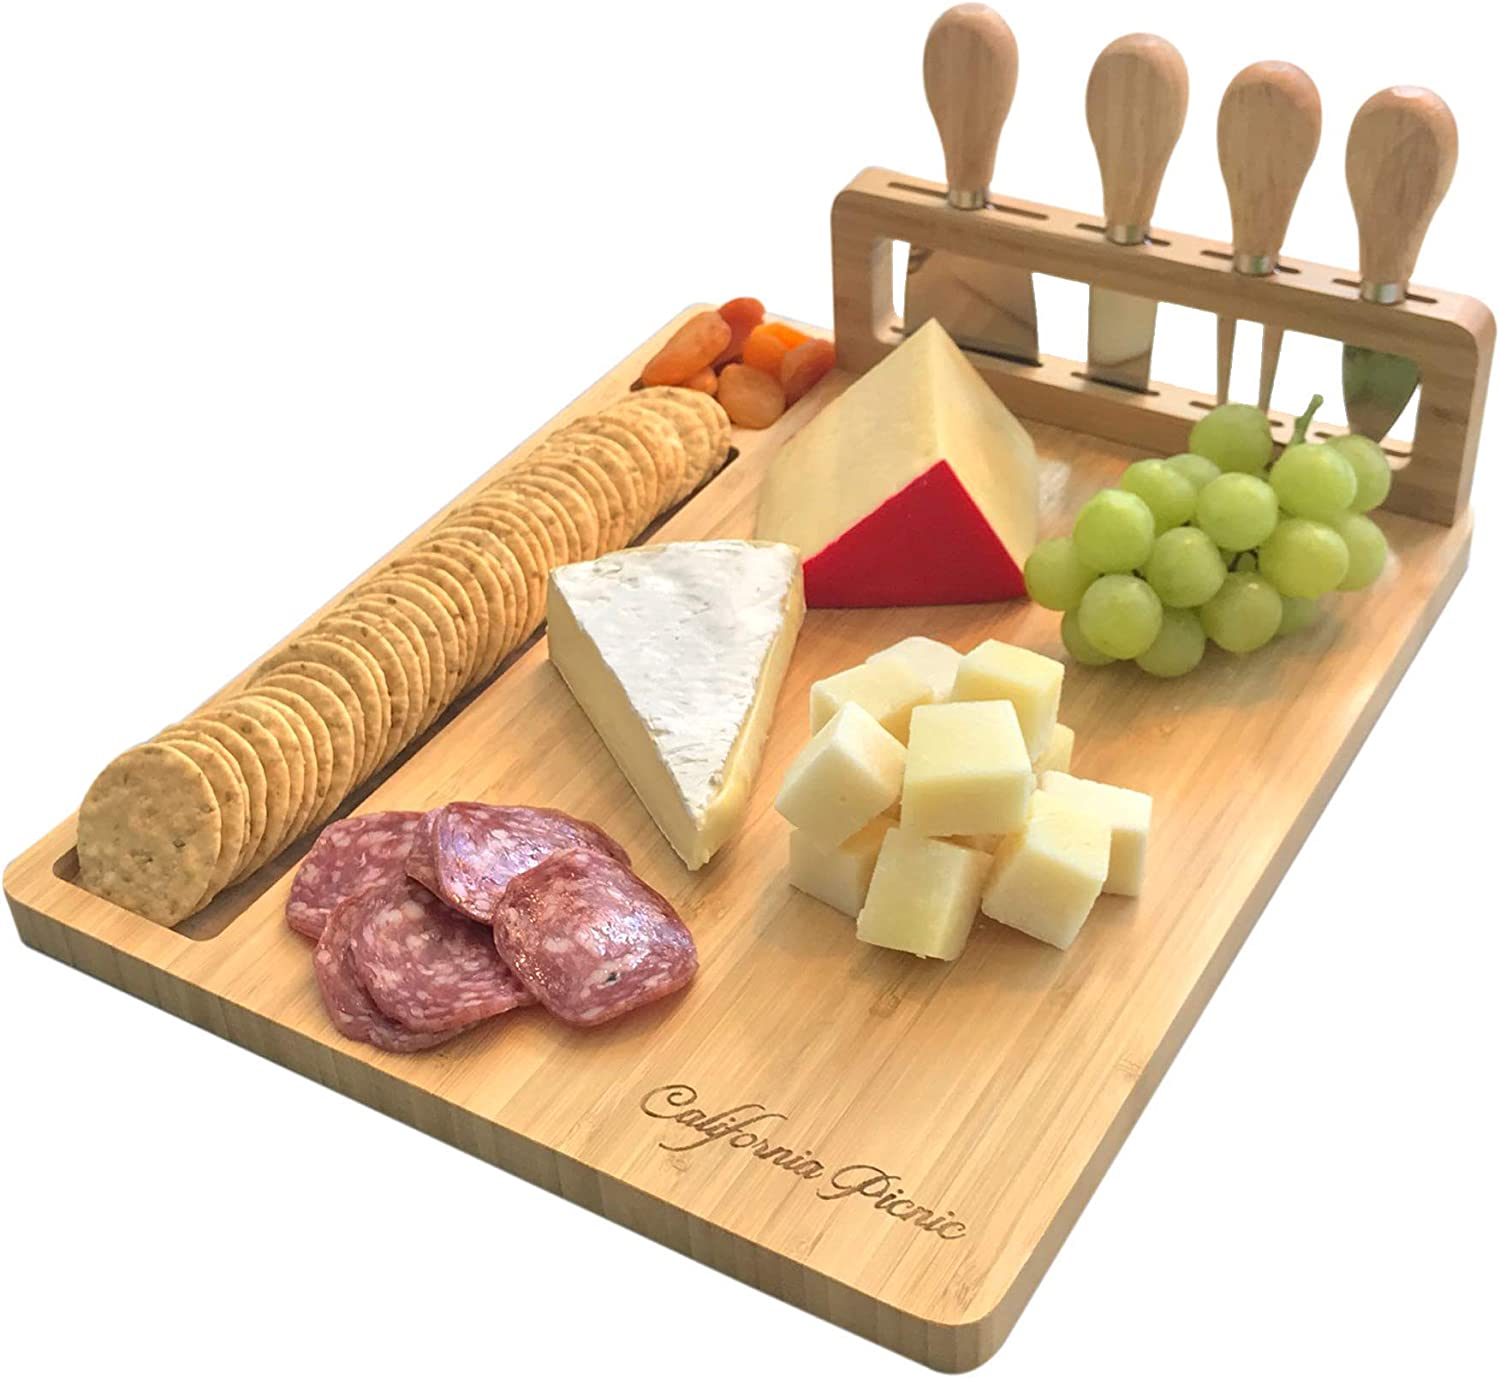 Cheese Board and Knife Set | Wine Board | Organic Bamboo Wood Charcuterie Platter Serving Board Cheese Tray with Cutlery | Perfect for Birthday, Housewarming & Wedding Gifts | 20 Pack Flag Markers